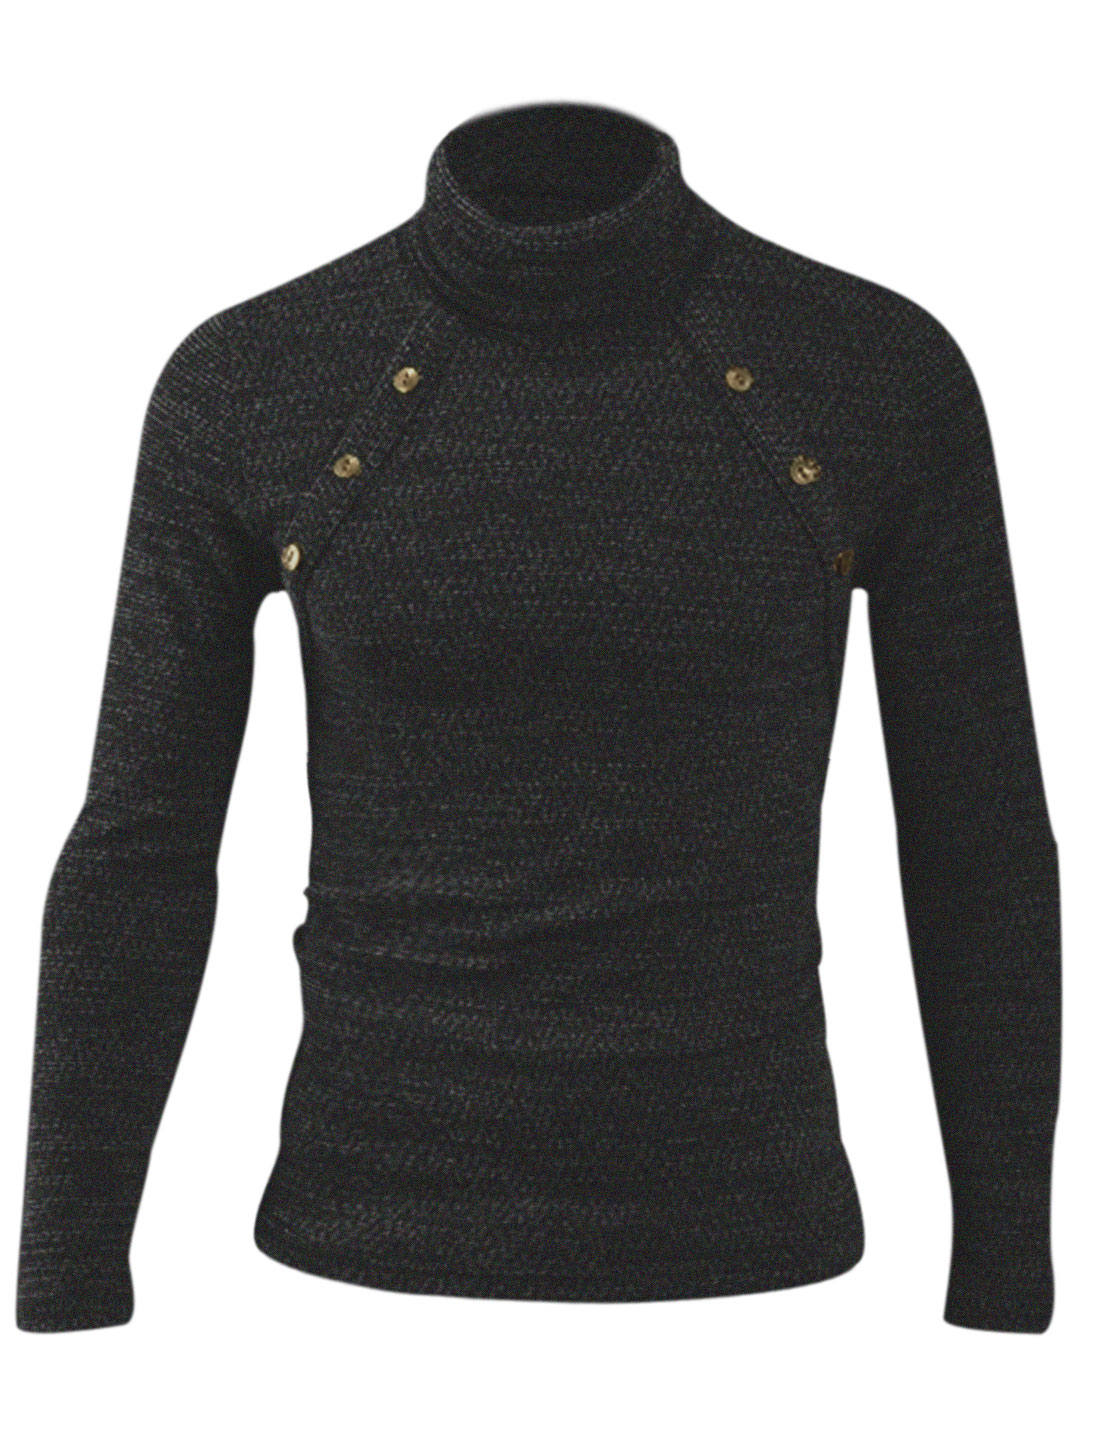 Turtle Neck Buttons Decor Fashion Knit Shirt for Men Black M